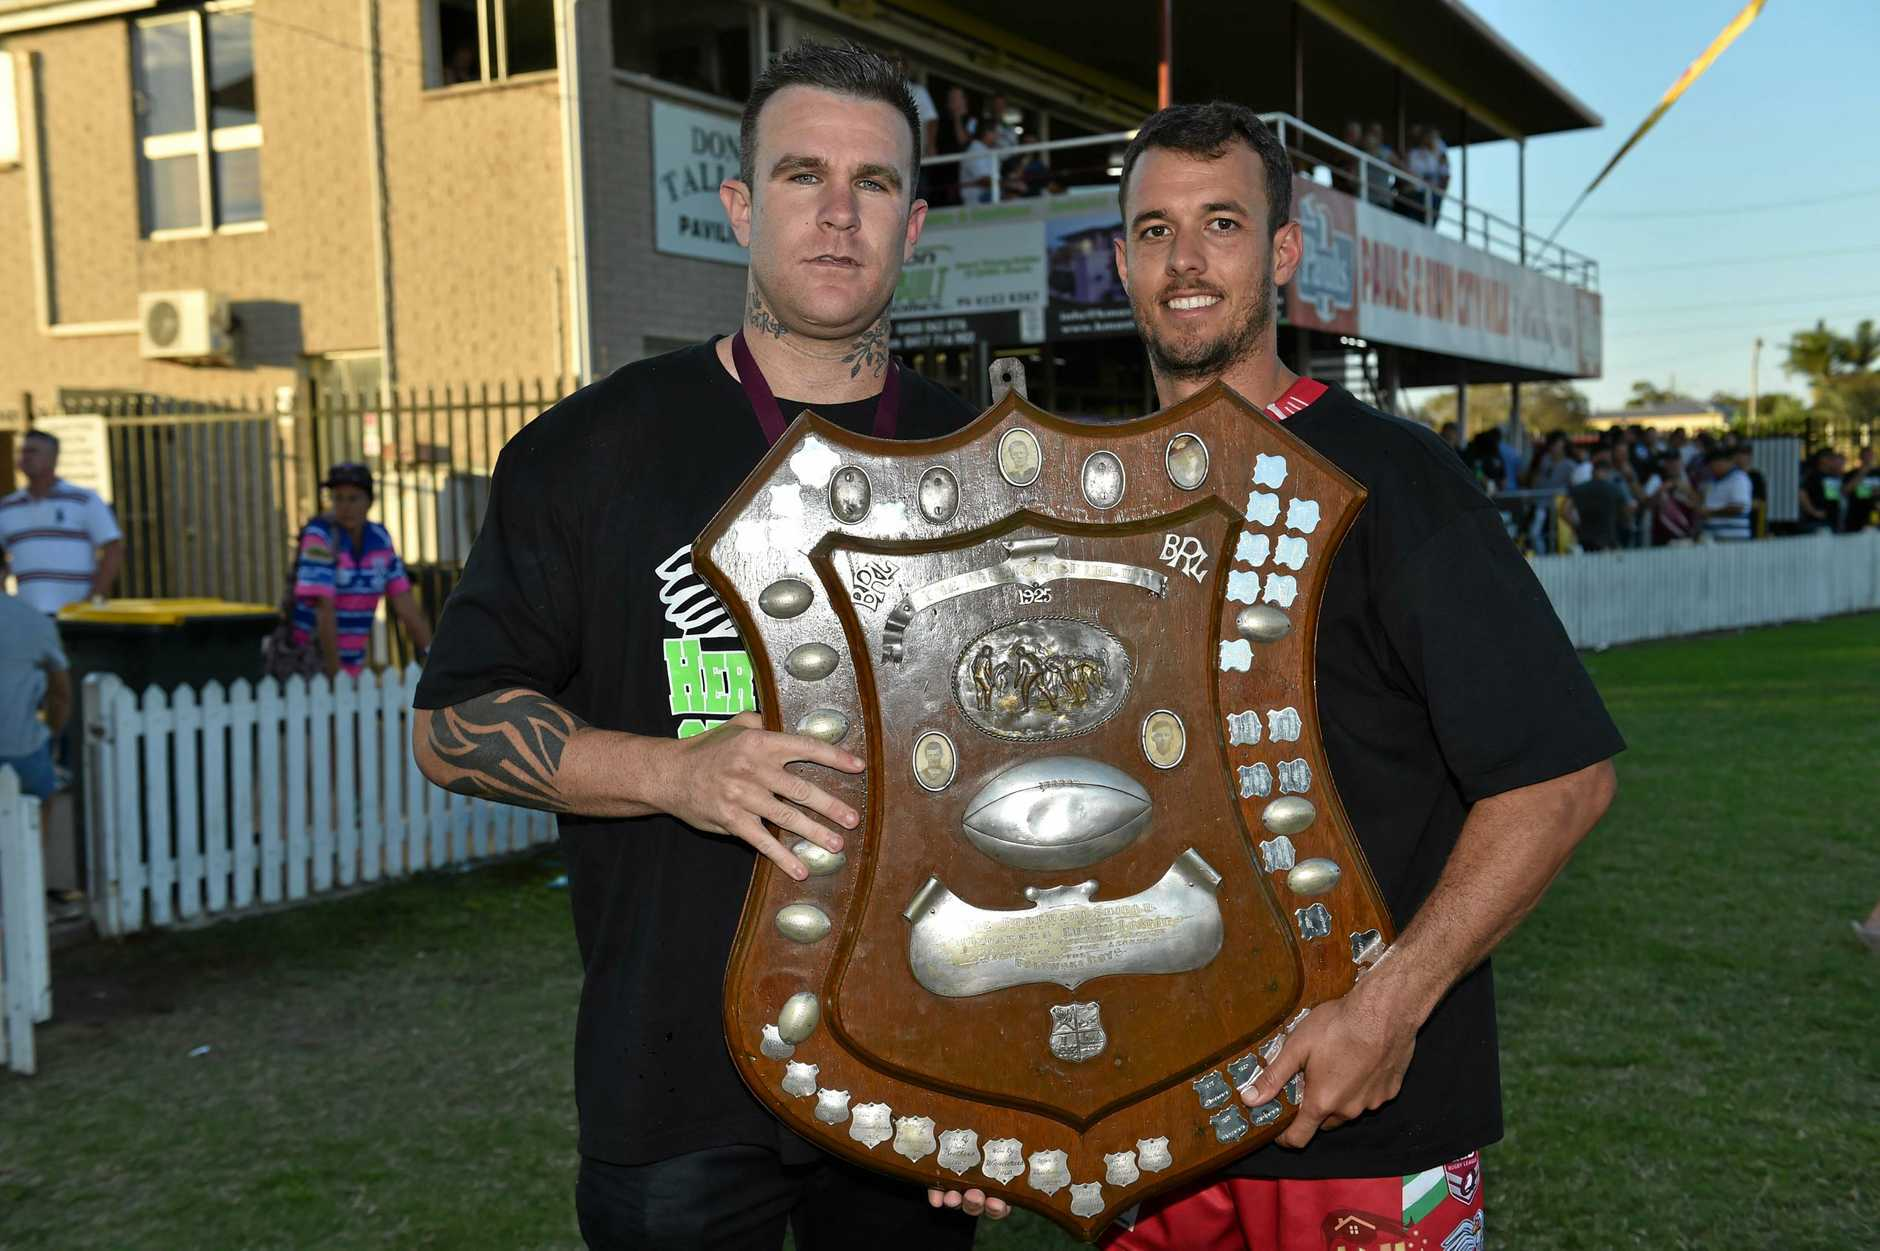 Seagulls coach Tye Ingebrigtsen and captain Clinton Horne with the shield. Bundaberg Rugby League grand final: Hervey Bay Seagulls v The Waves Tigers at Salter Oval, Bundaberg.